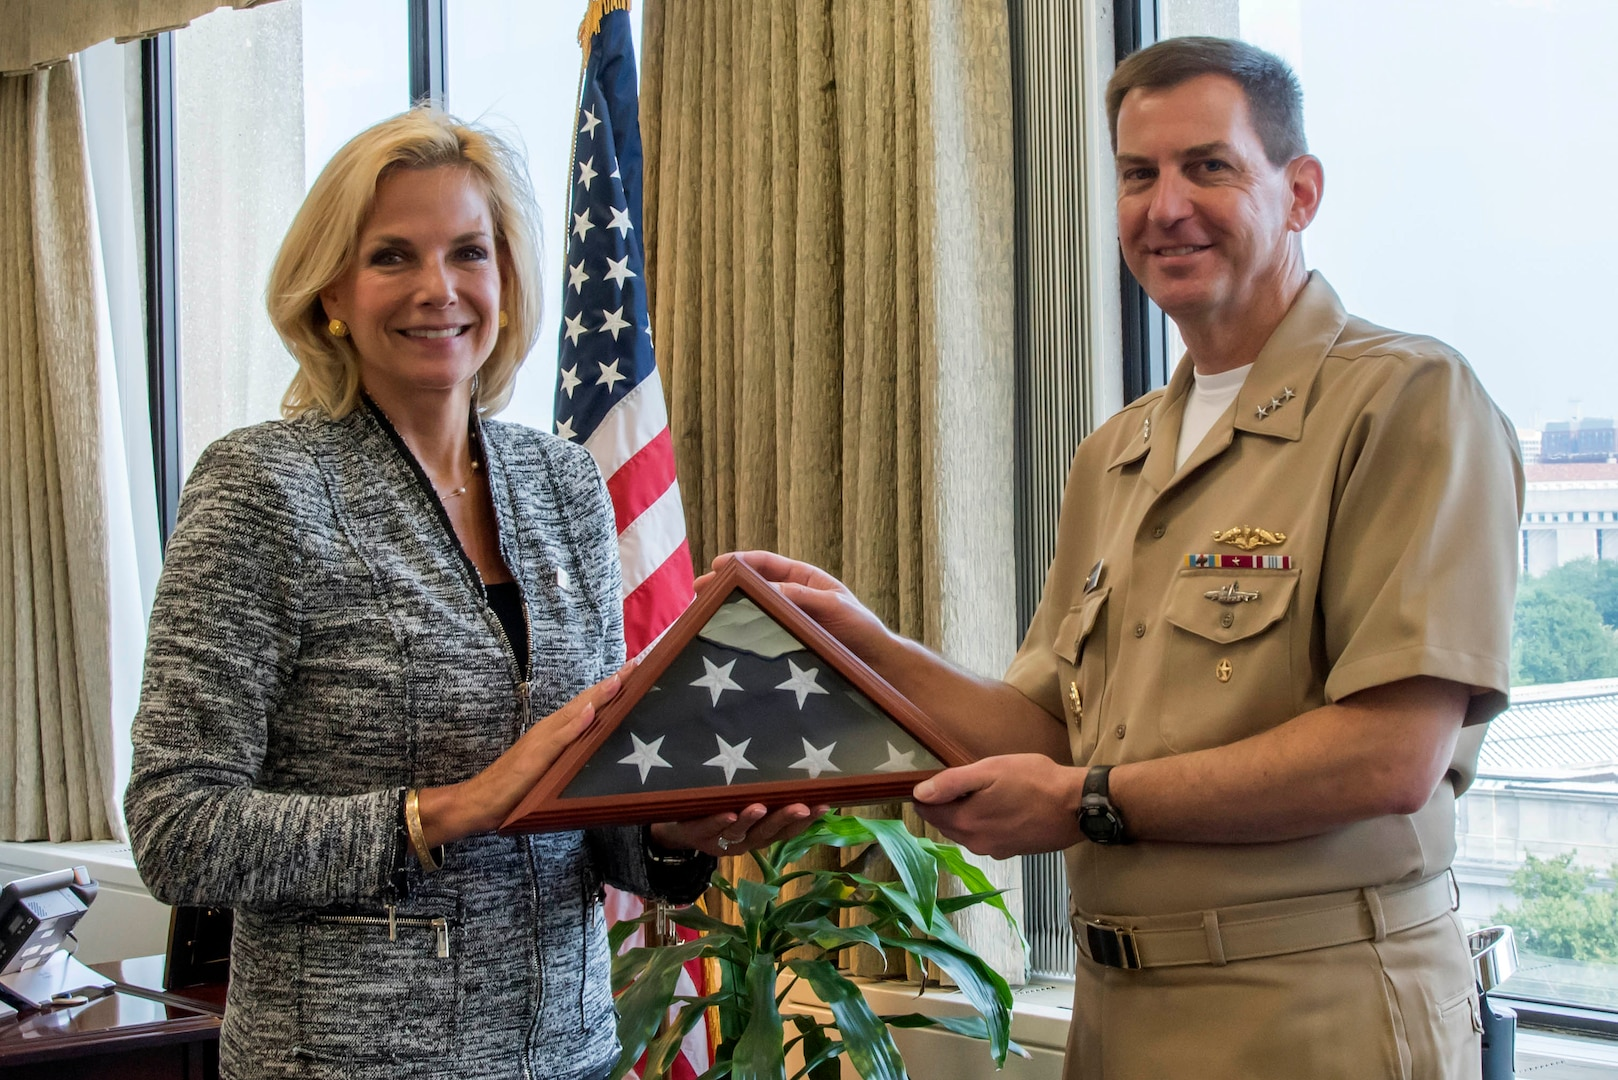 Lisa E. Gordon-Hagerty, the under secretary for Nuclear Security of the U.S. Department of Energy and administrator of the National Nuclear Security Administration (NNSA), presents U.S. Navy Vice Adm. David Kriete, the deputy commander of U.S. Strategic Command, with a U.S. flag that has been flown over every NNSA lab, plant, and site during an award ceremony at NNSA headquarters in Washington, D.C., Aug. 17, 2018.  Kriete also received the Administrator's Distinguished Service Silver award for his exceptional service as the Director of Strategic Capabilities Policy at the National Security Council from July 2016 to March 2018.